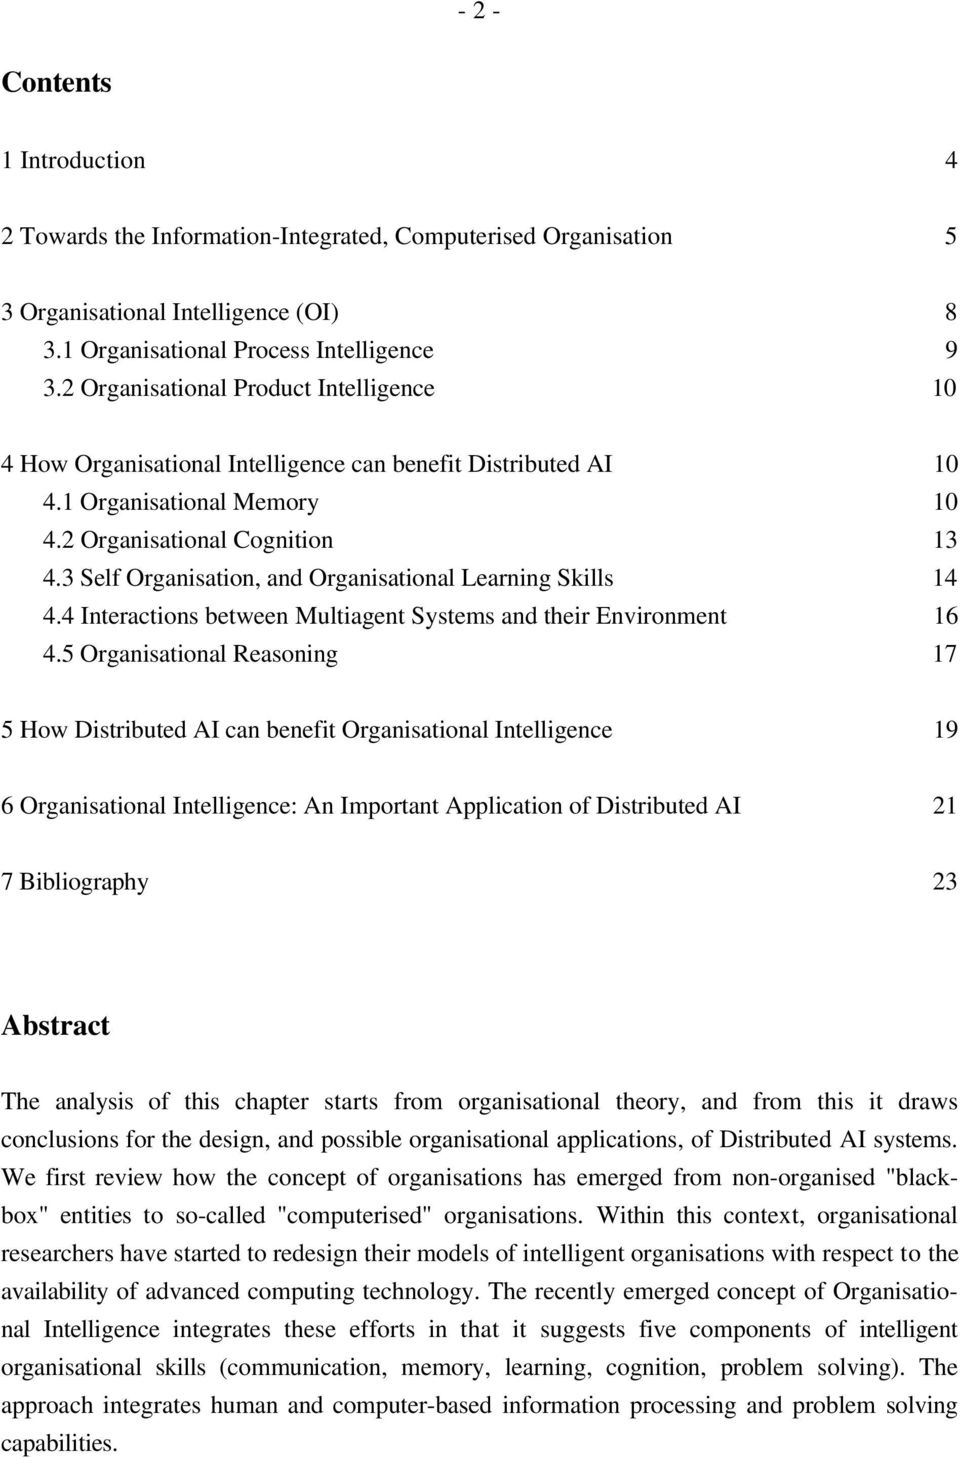 3 Self Organisation, and Organisational Learning Skills 14 4.4 Interactions between Multiagent Systems and their Environment 16 4.